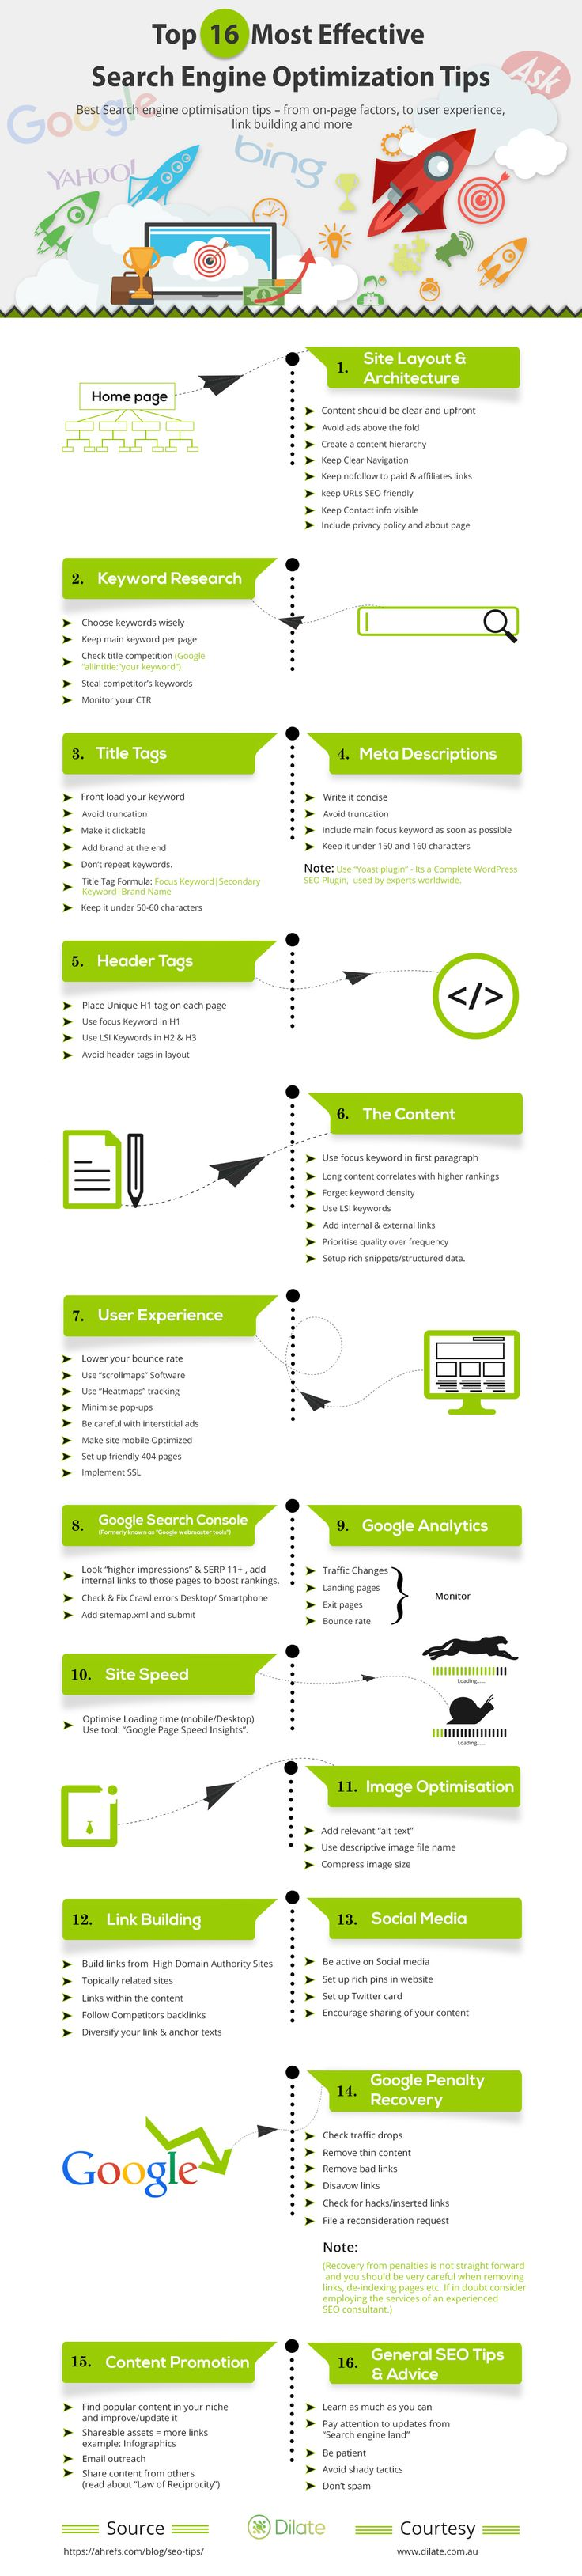 Top 16 Most Effective Search Engine Optimization Tips - #infographic